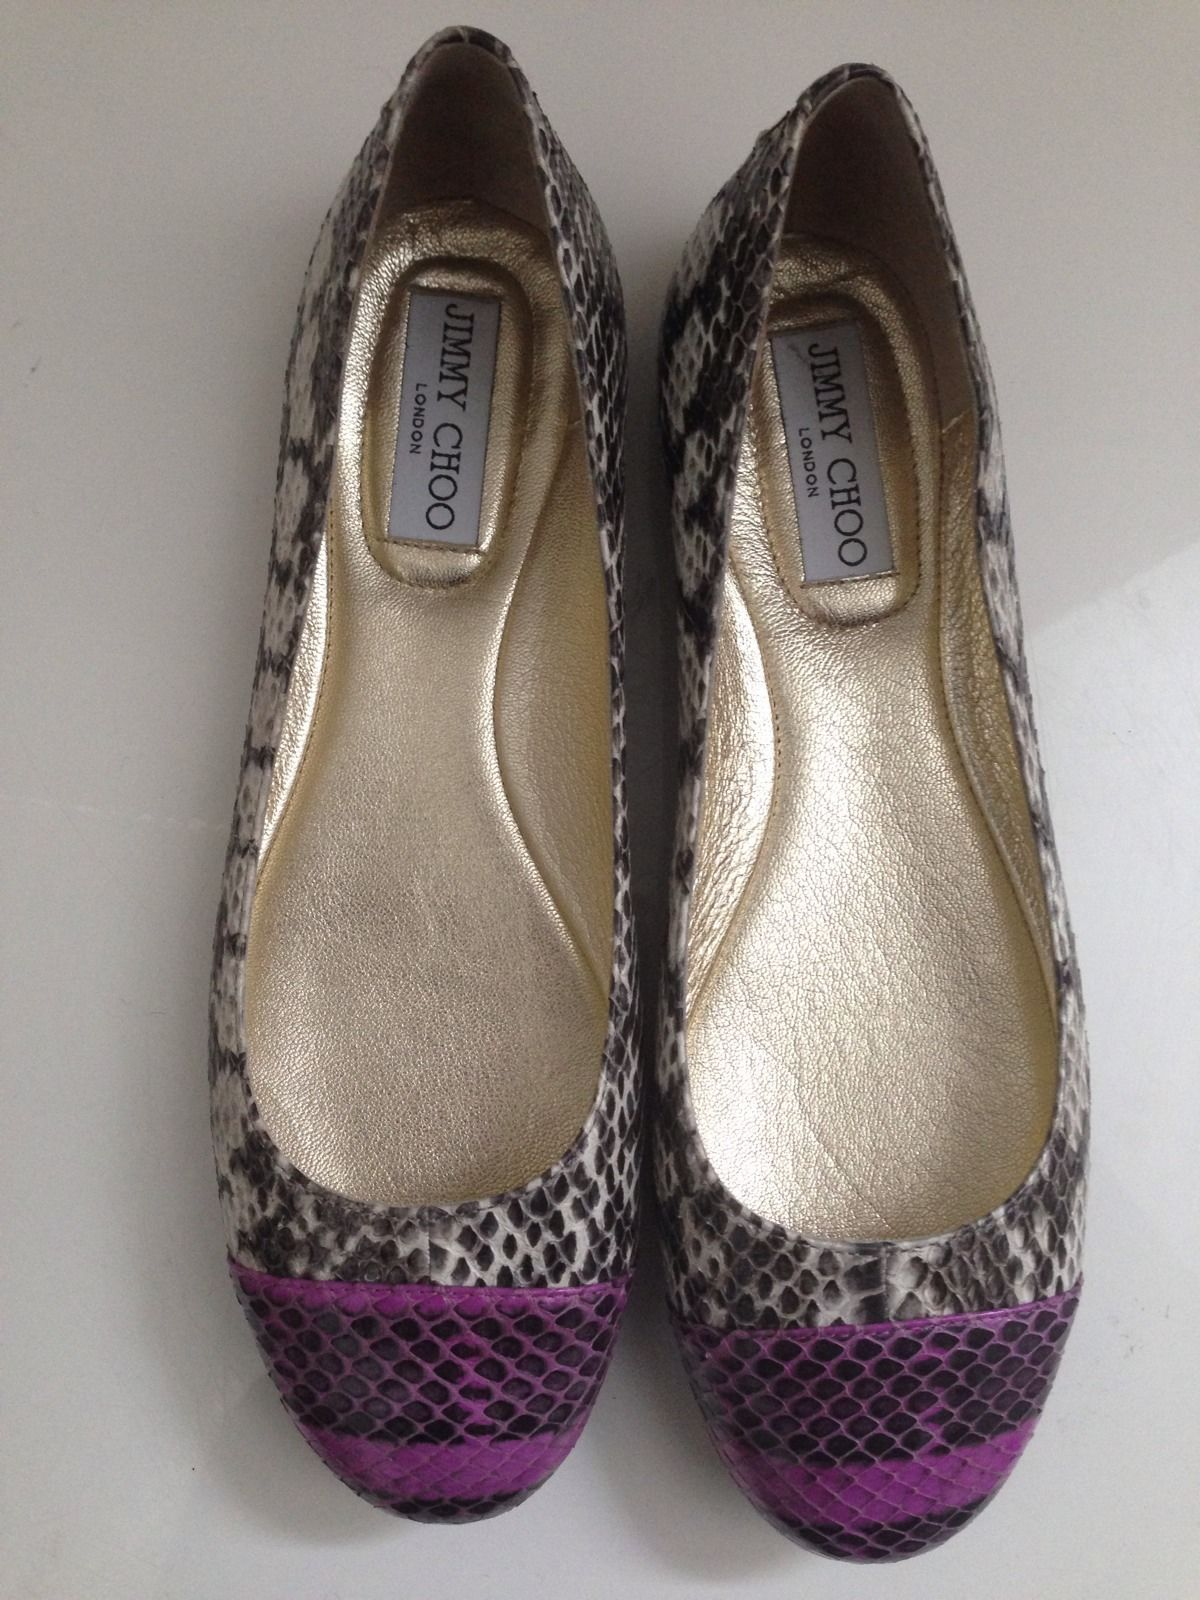 JIMMY CHOO Multicolor Whirl Snakeskin Captoe Ballet Flats Shoes US 7.5 NEW